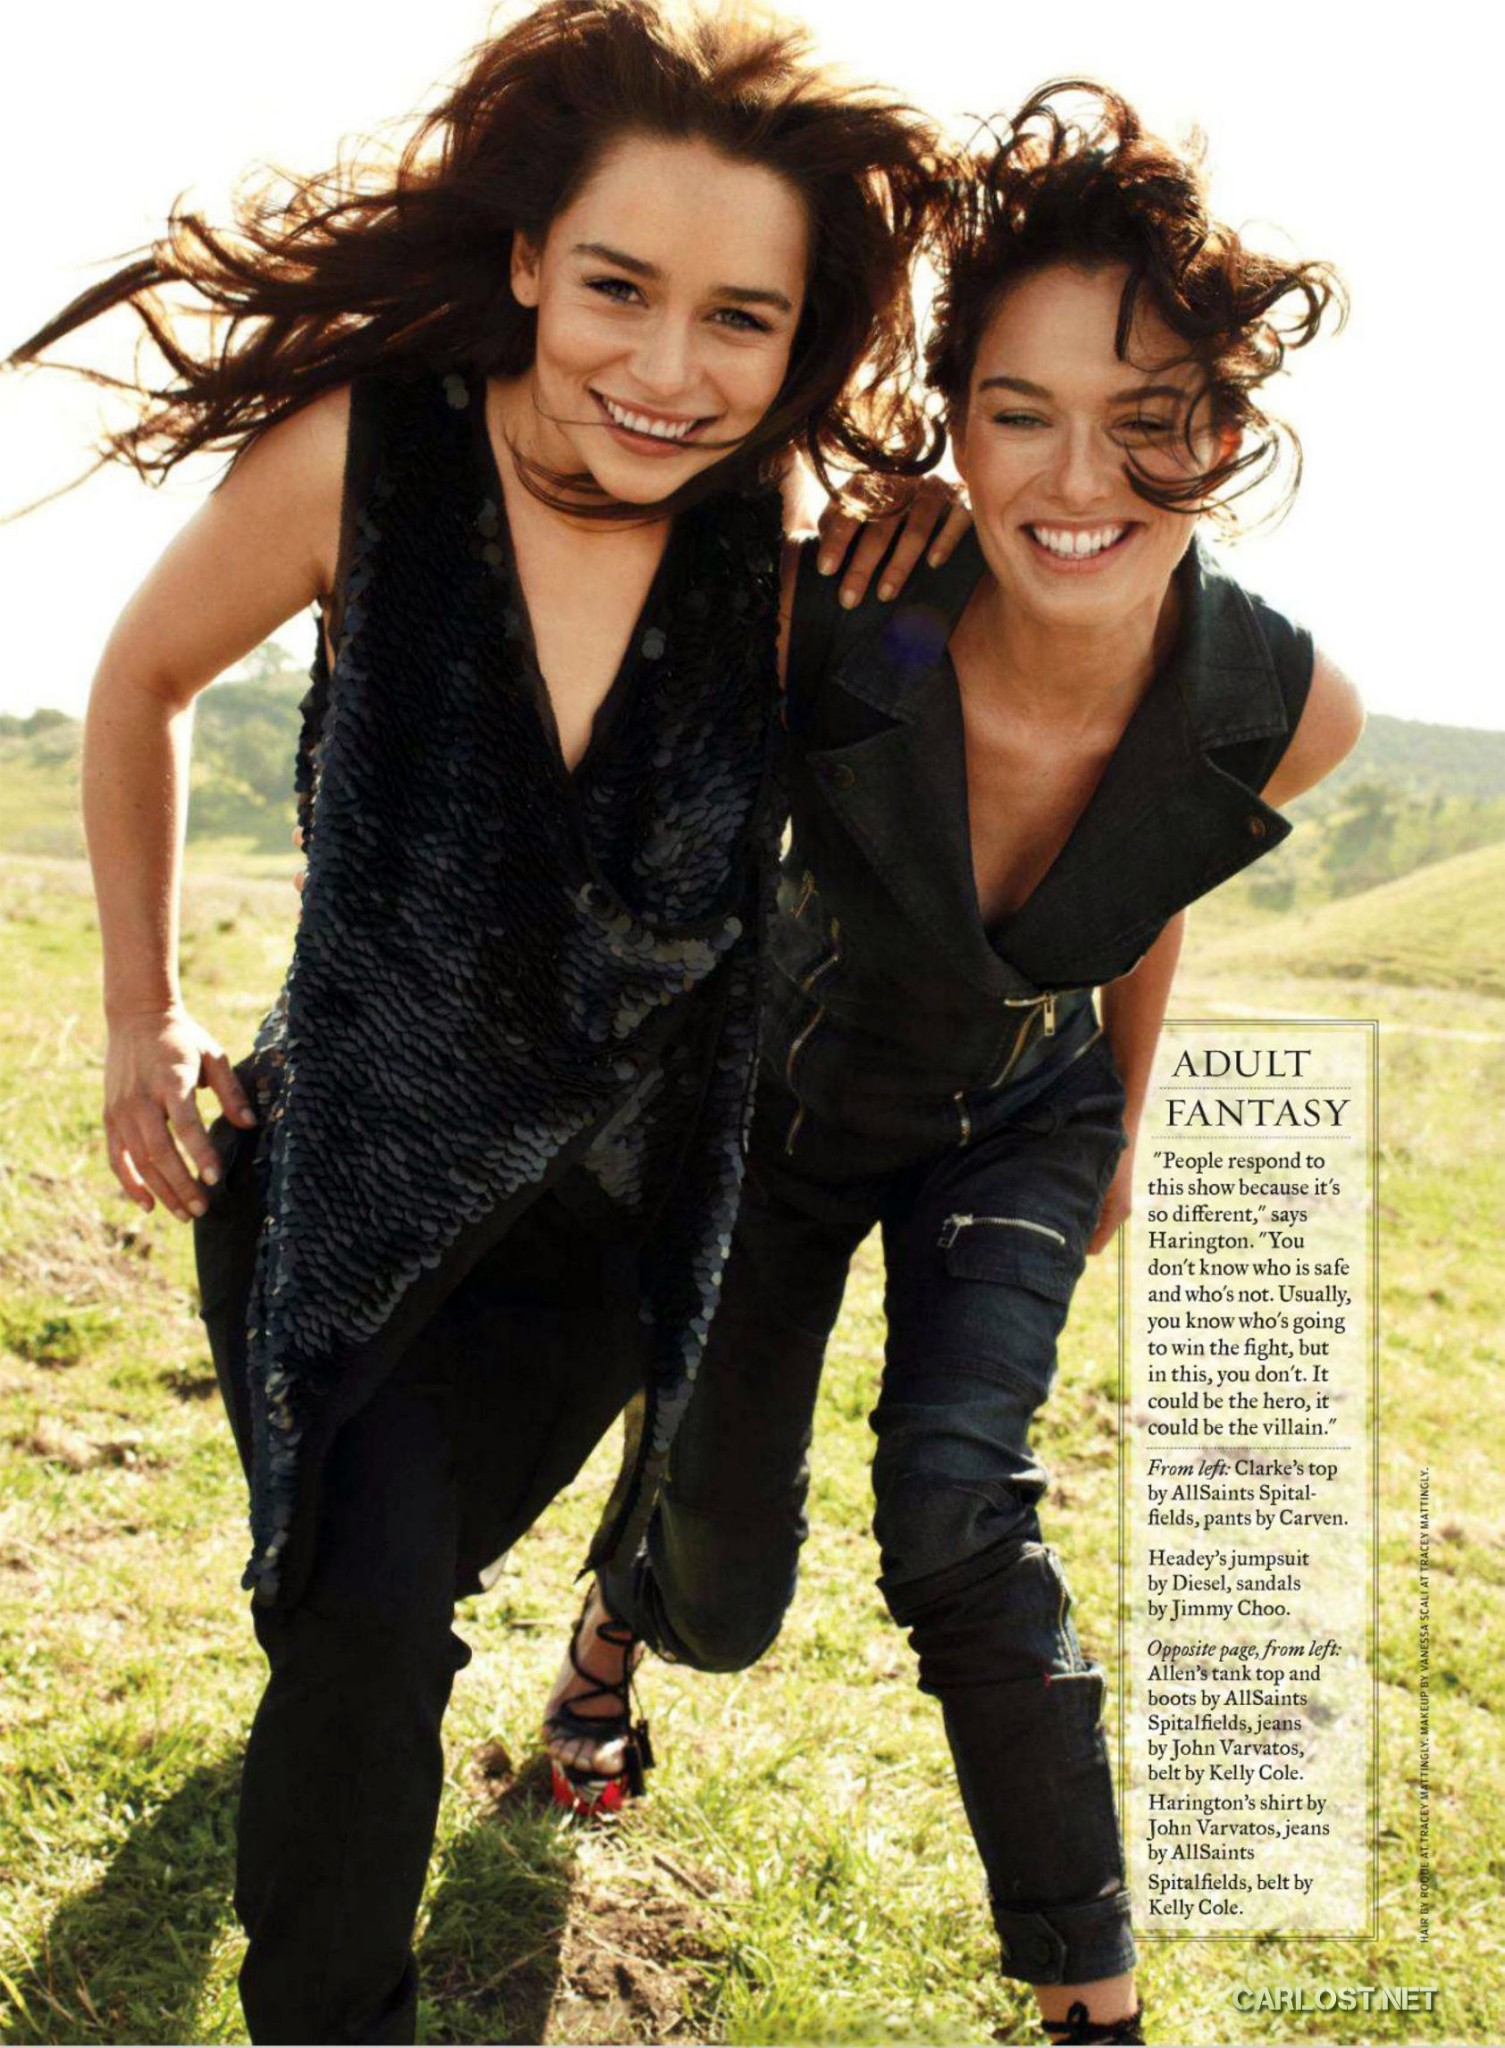 fringe bloopers ver game of thronesGame of Thrones   Rolling Stone Magazine Photoshoot Carlost v7zTLcEW